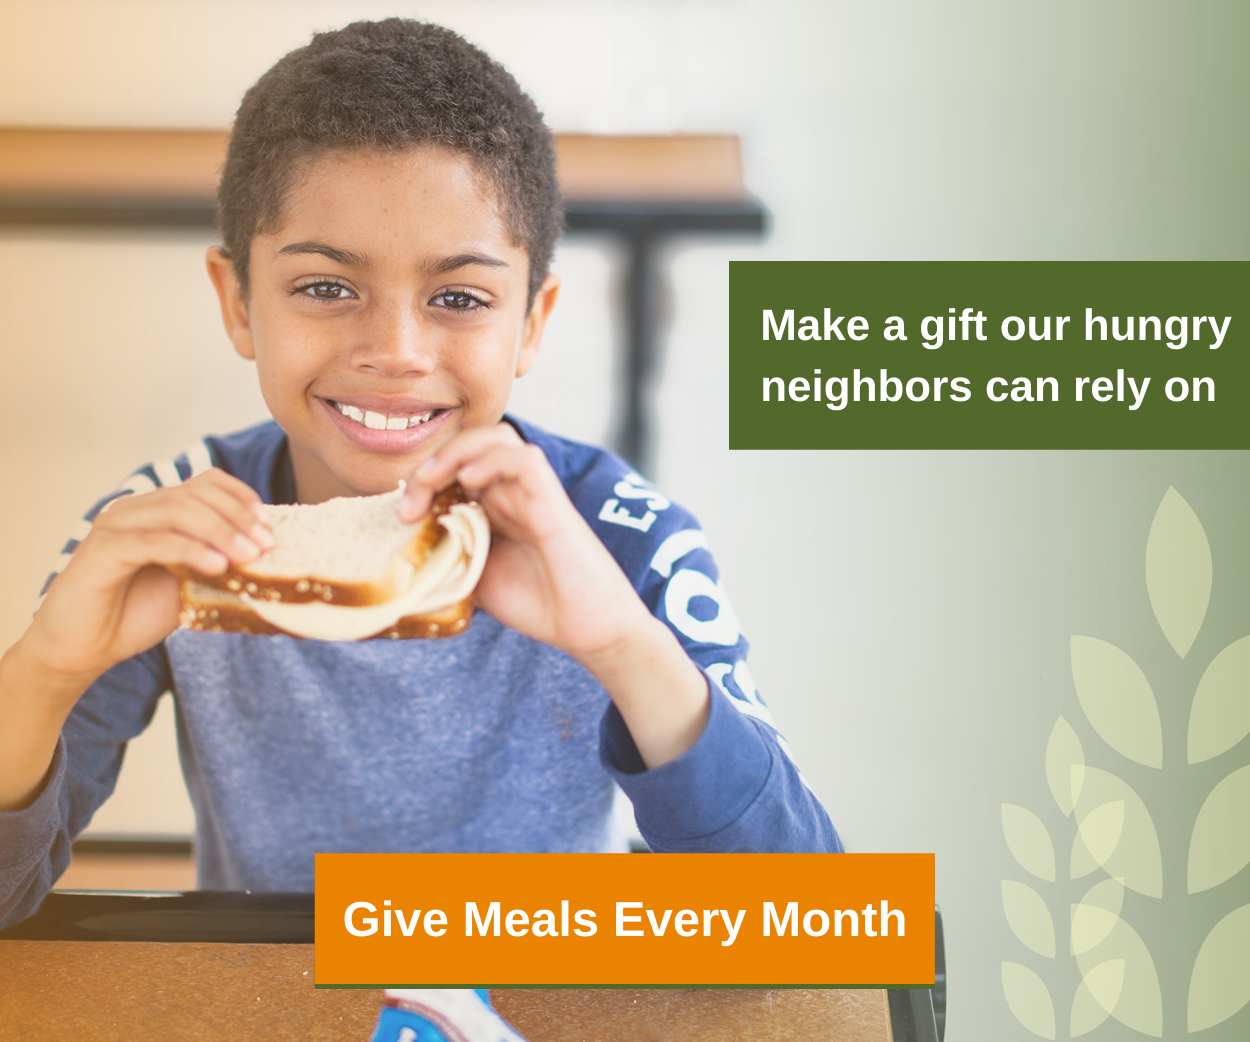 Make a gift our hungry neighbors can rely on. Give meals every month.